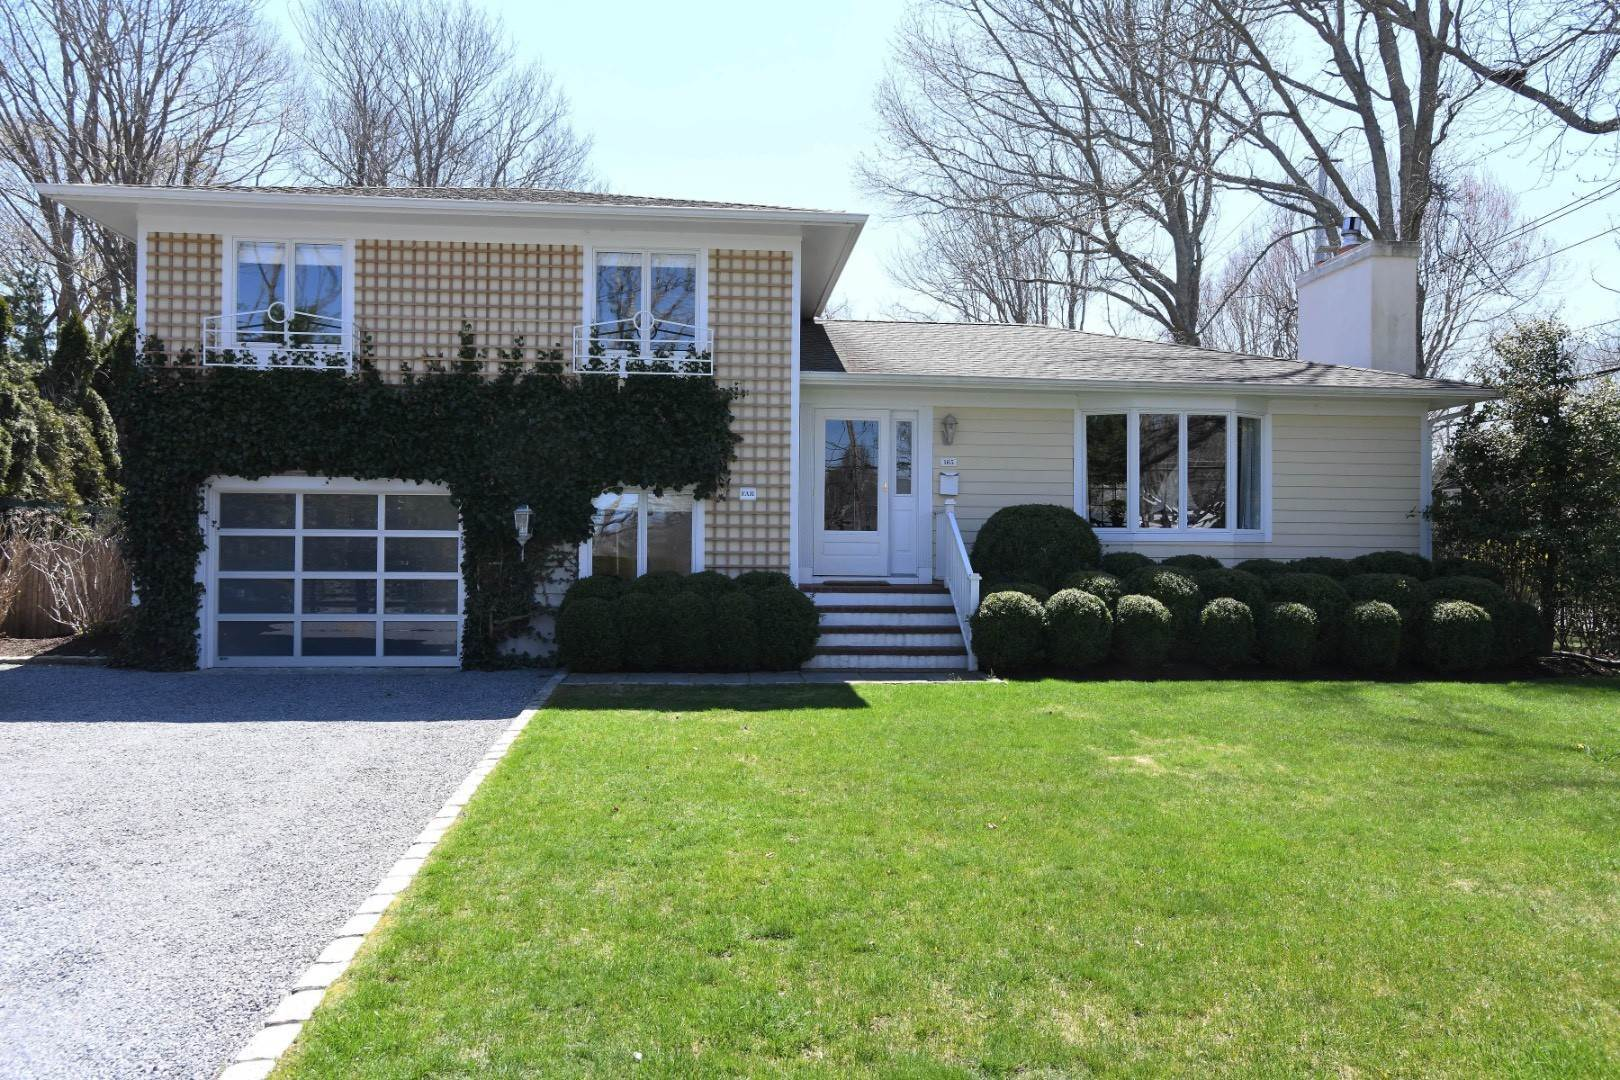 Single Family Home at Village Living Close To All East Hampton, NY 11937